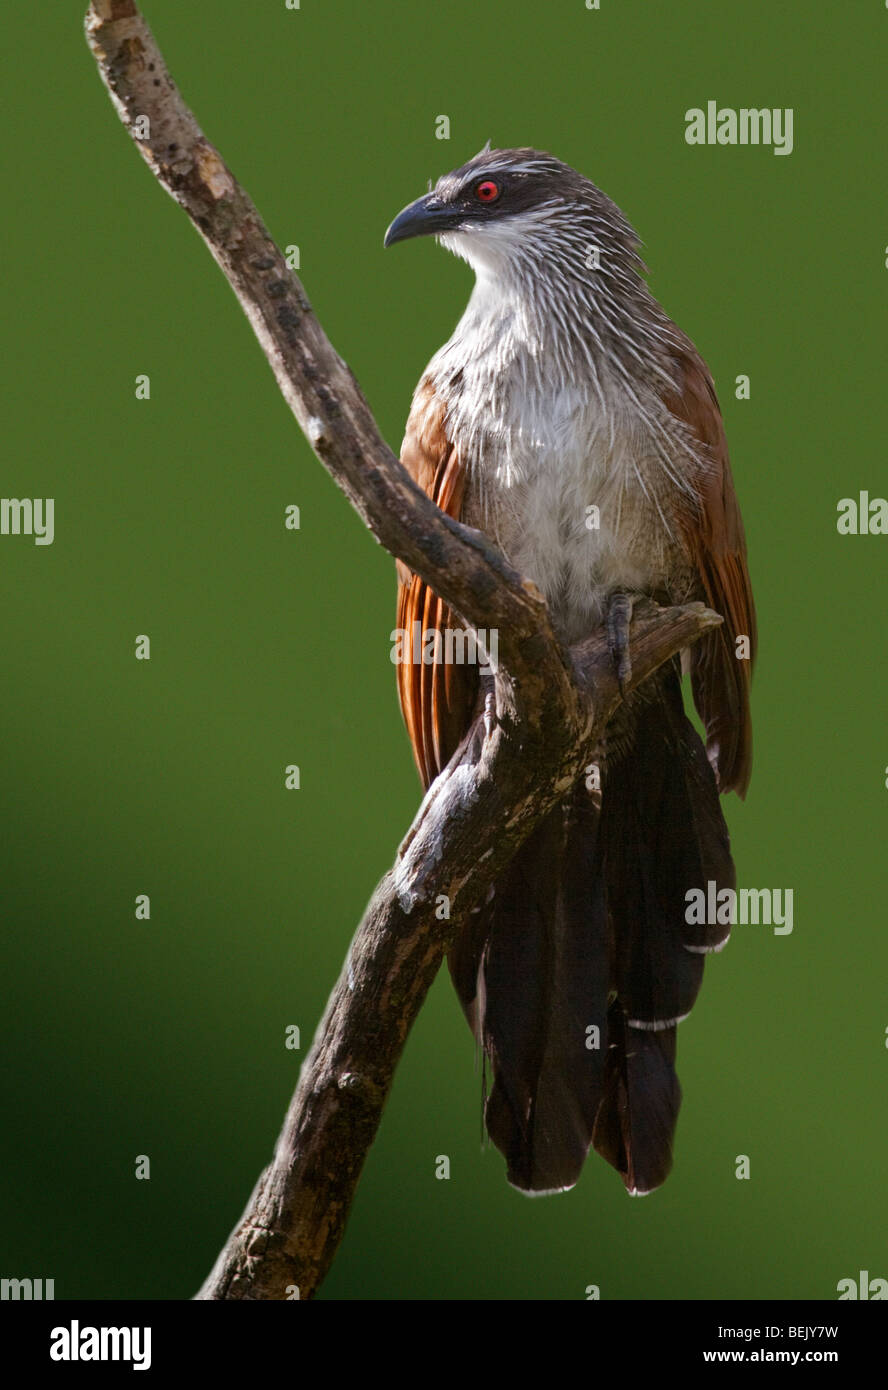 White-Browed Coucal (centropus superciliosus) - Stock Image